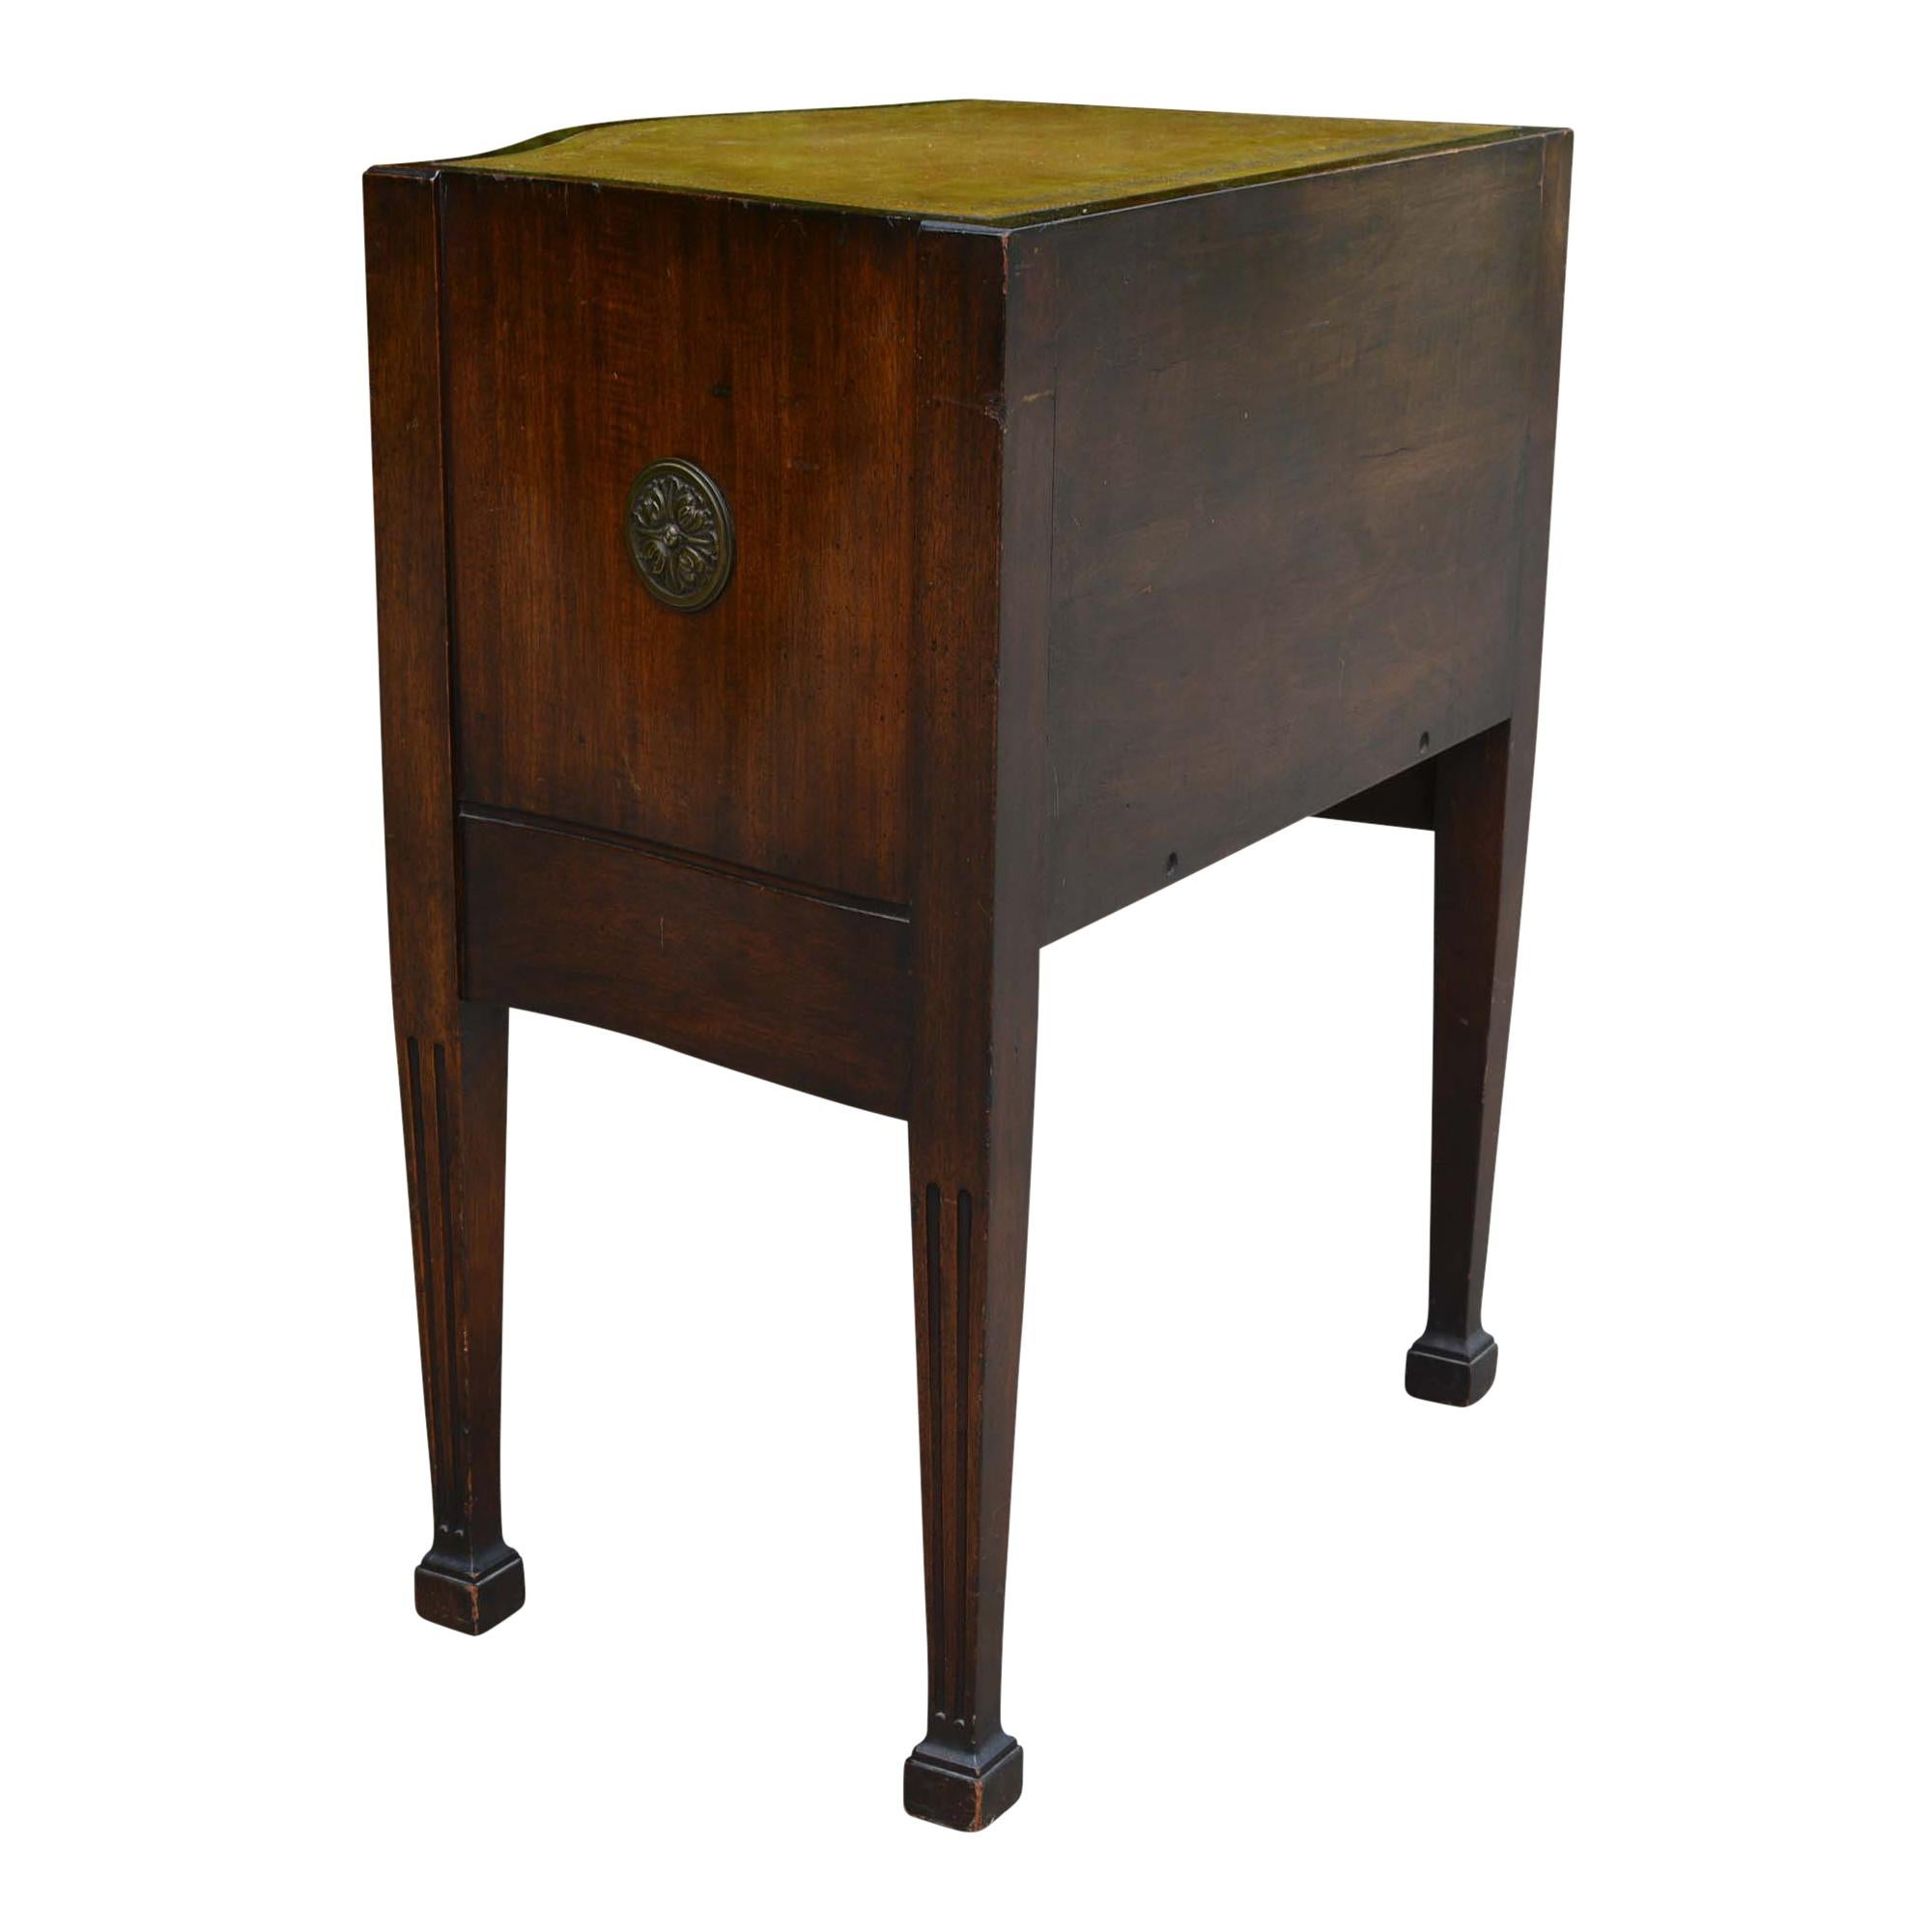 Antique Embossed Leather Top End Table For Sale At 1stdibs